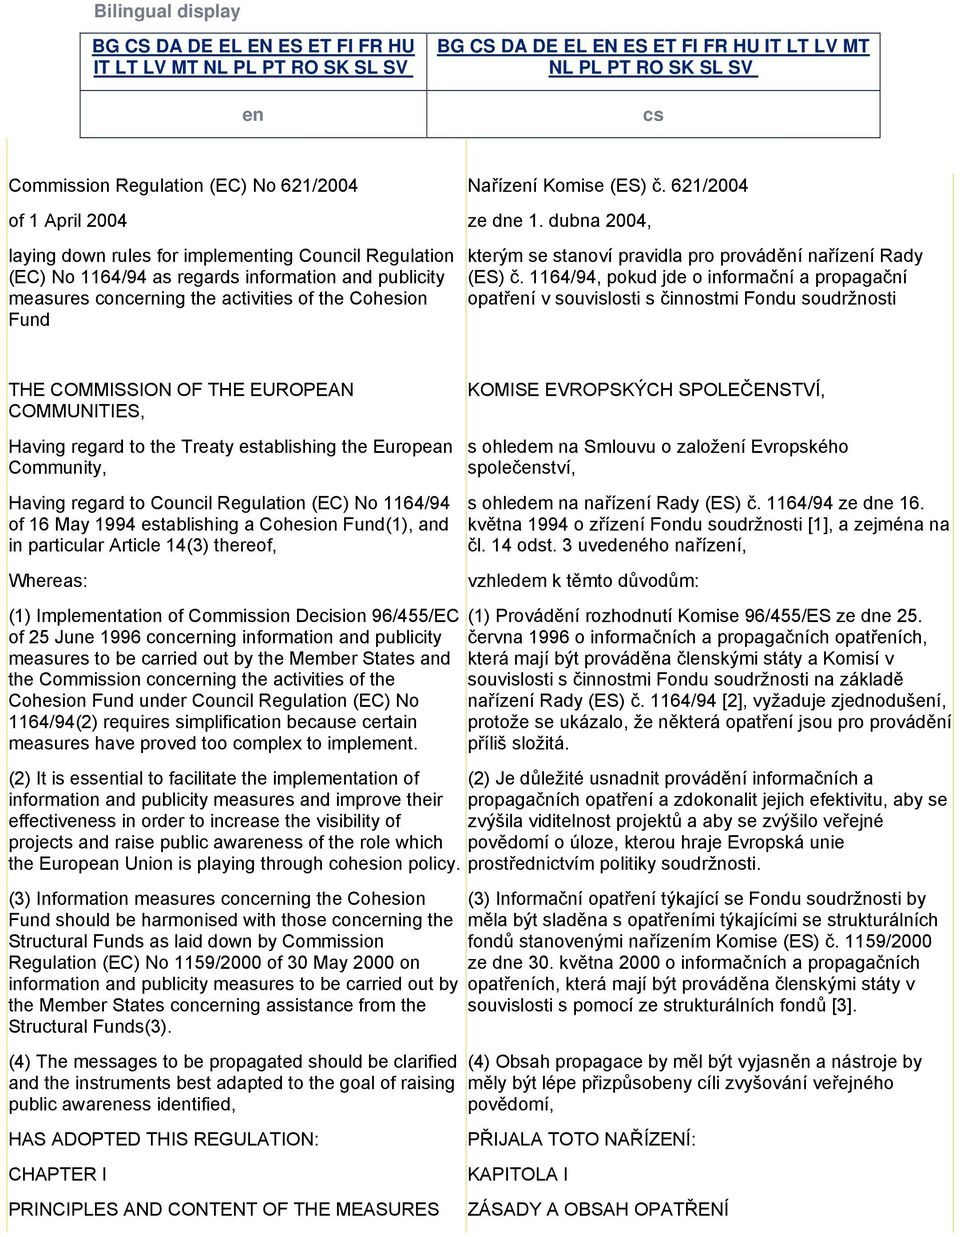 dubna 2004, laying down rules for implementing Council Regulation (EC) No 1164/94 as regards information and publicity measures concerning the activities of the Cohesion Fund kterým se stanoví